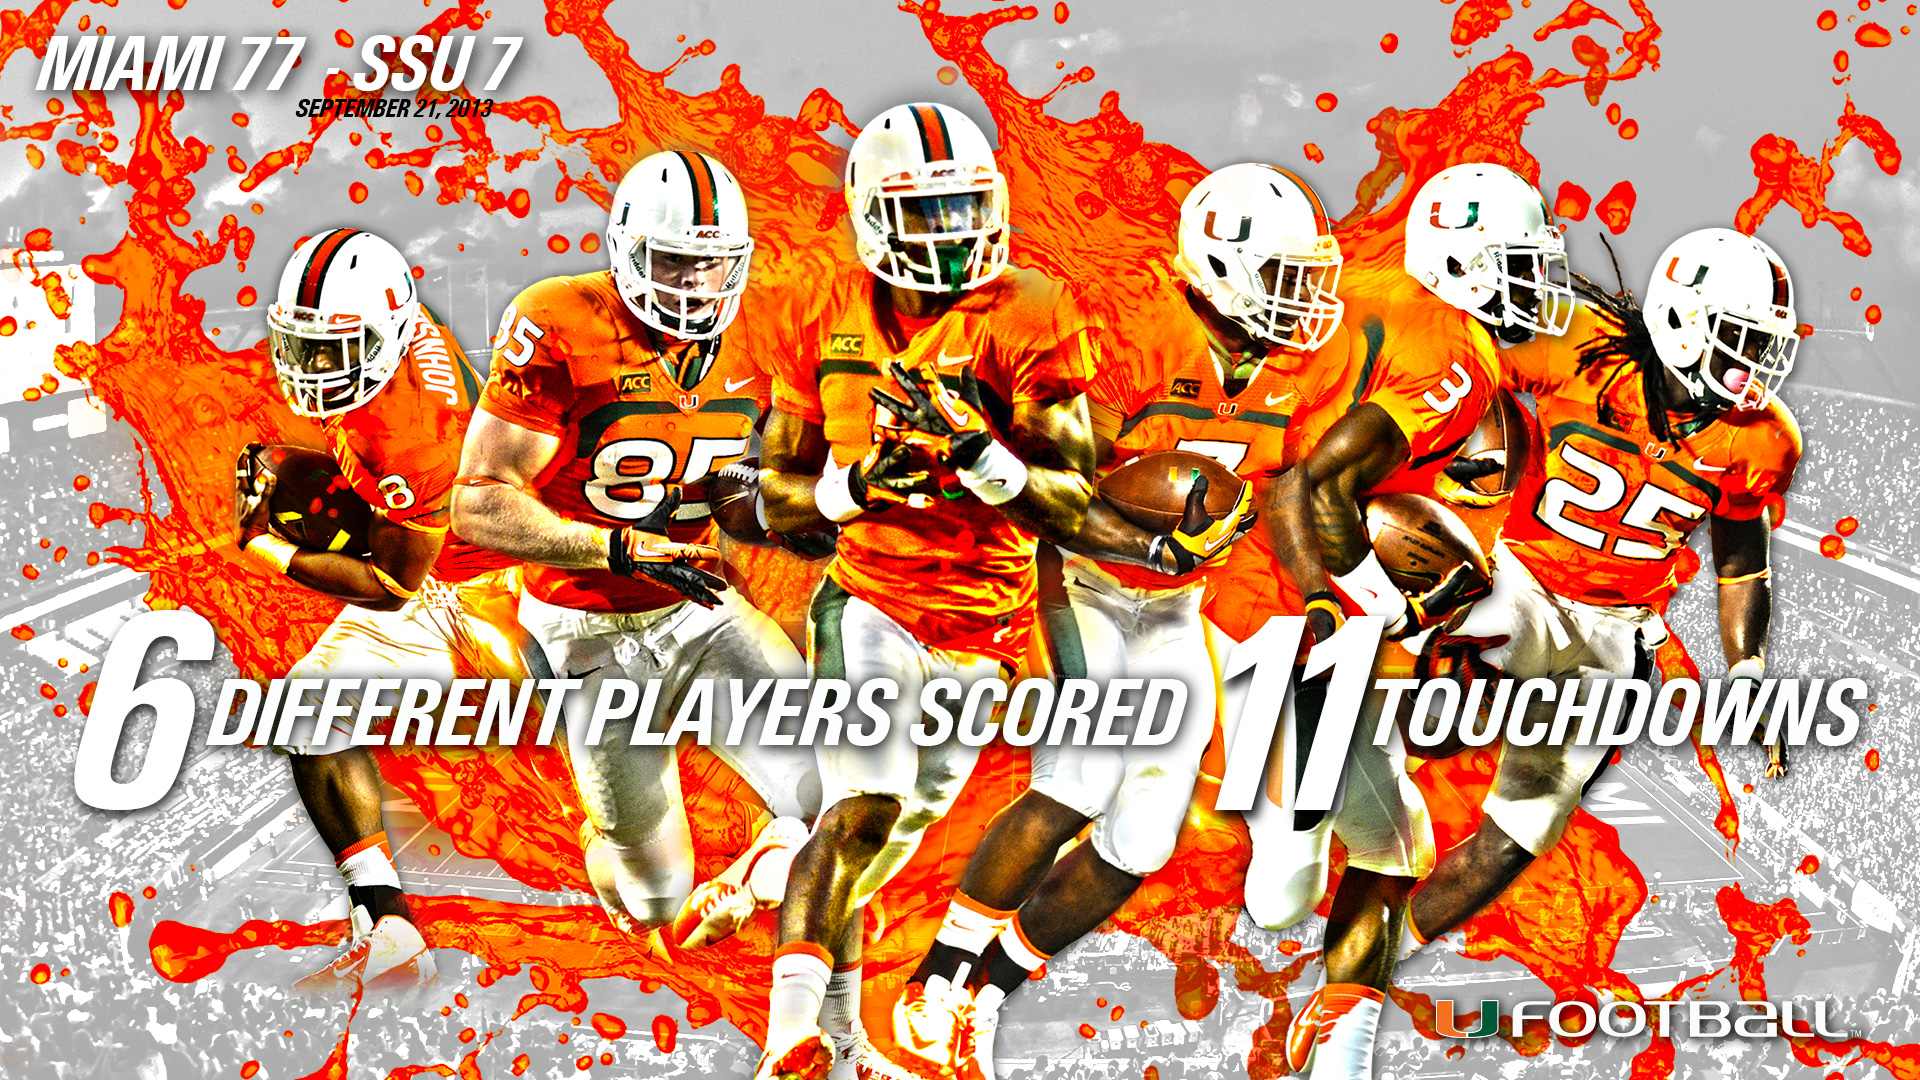 2013-14 Wallpapers - University of Miami Hurricanes Official